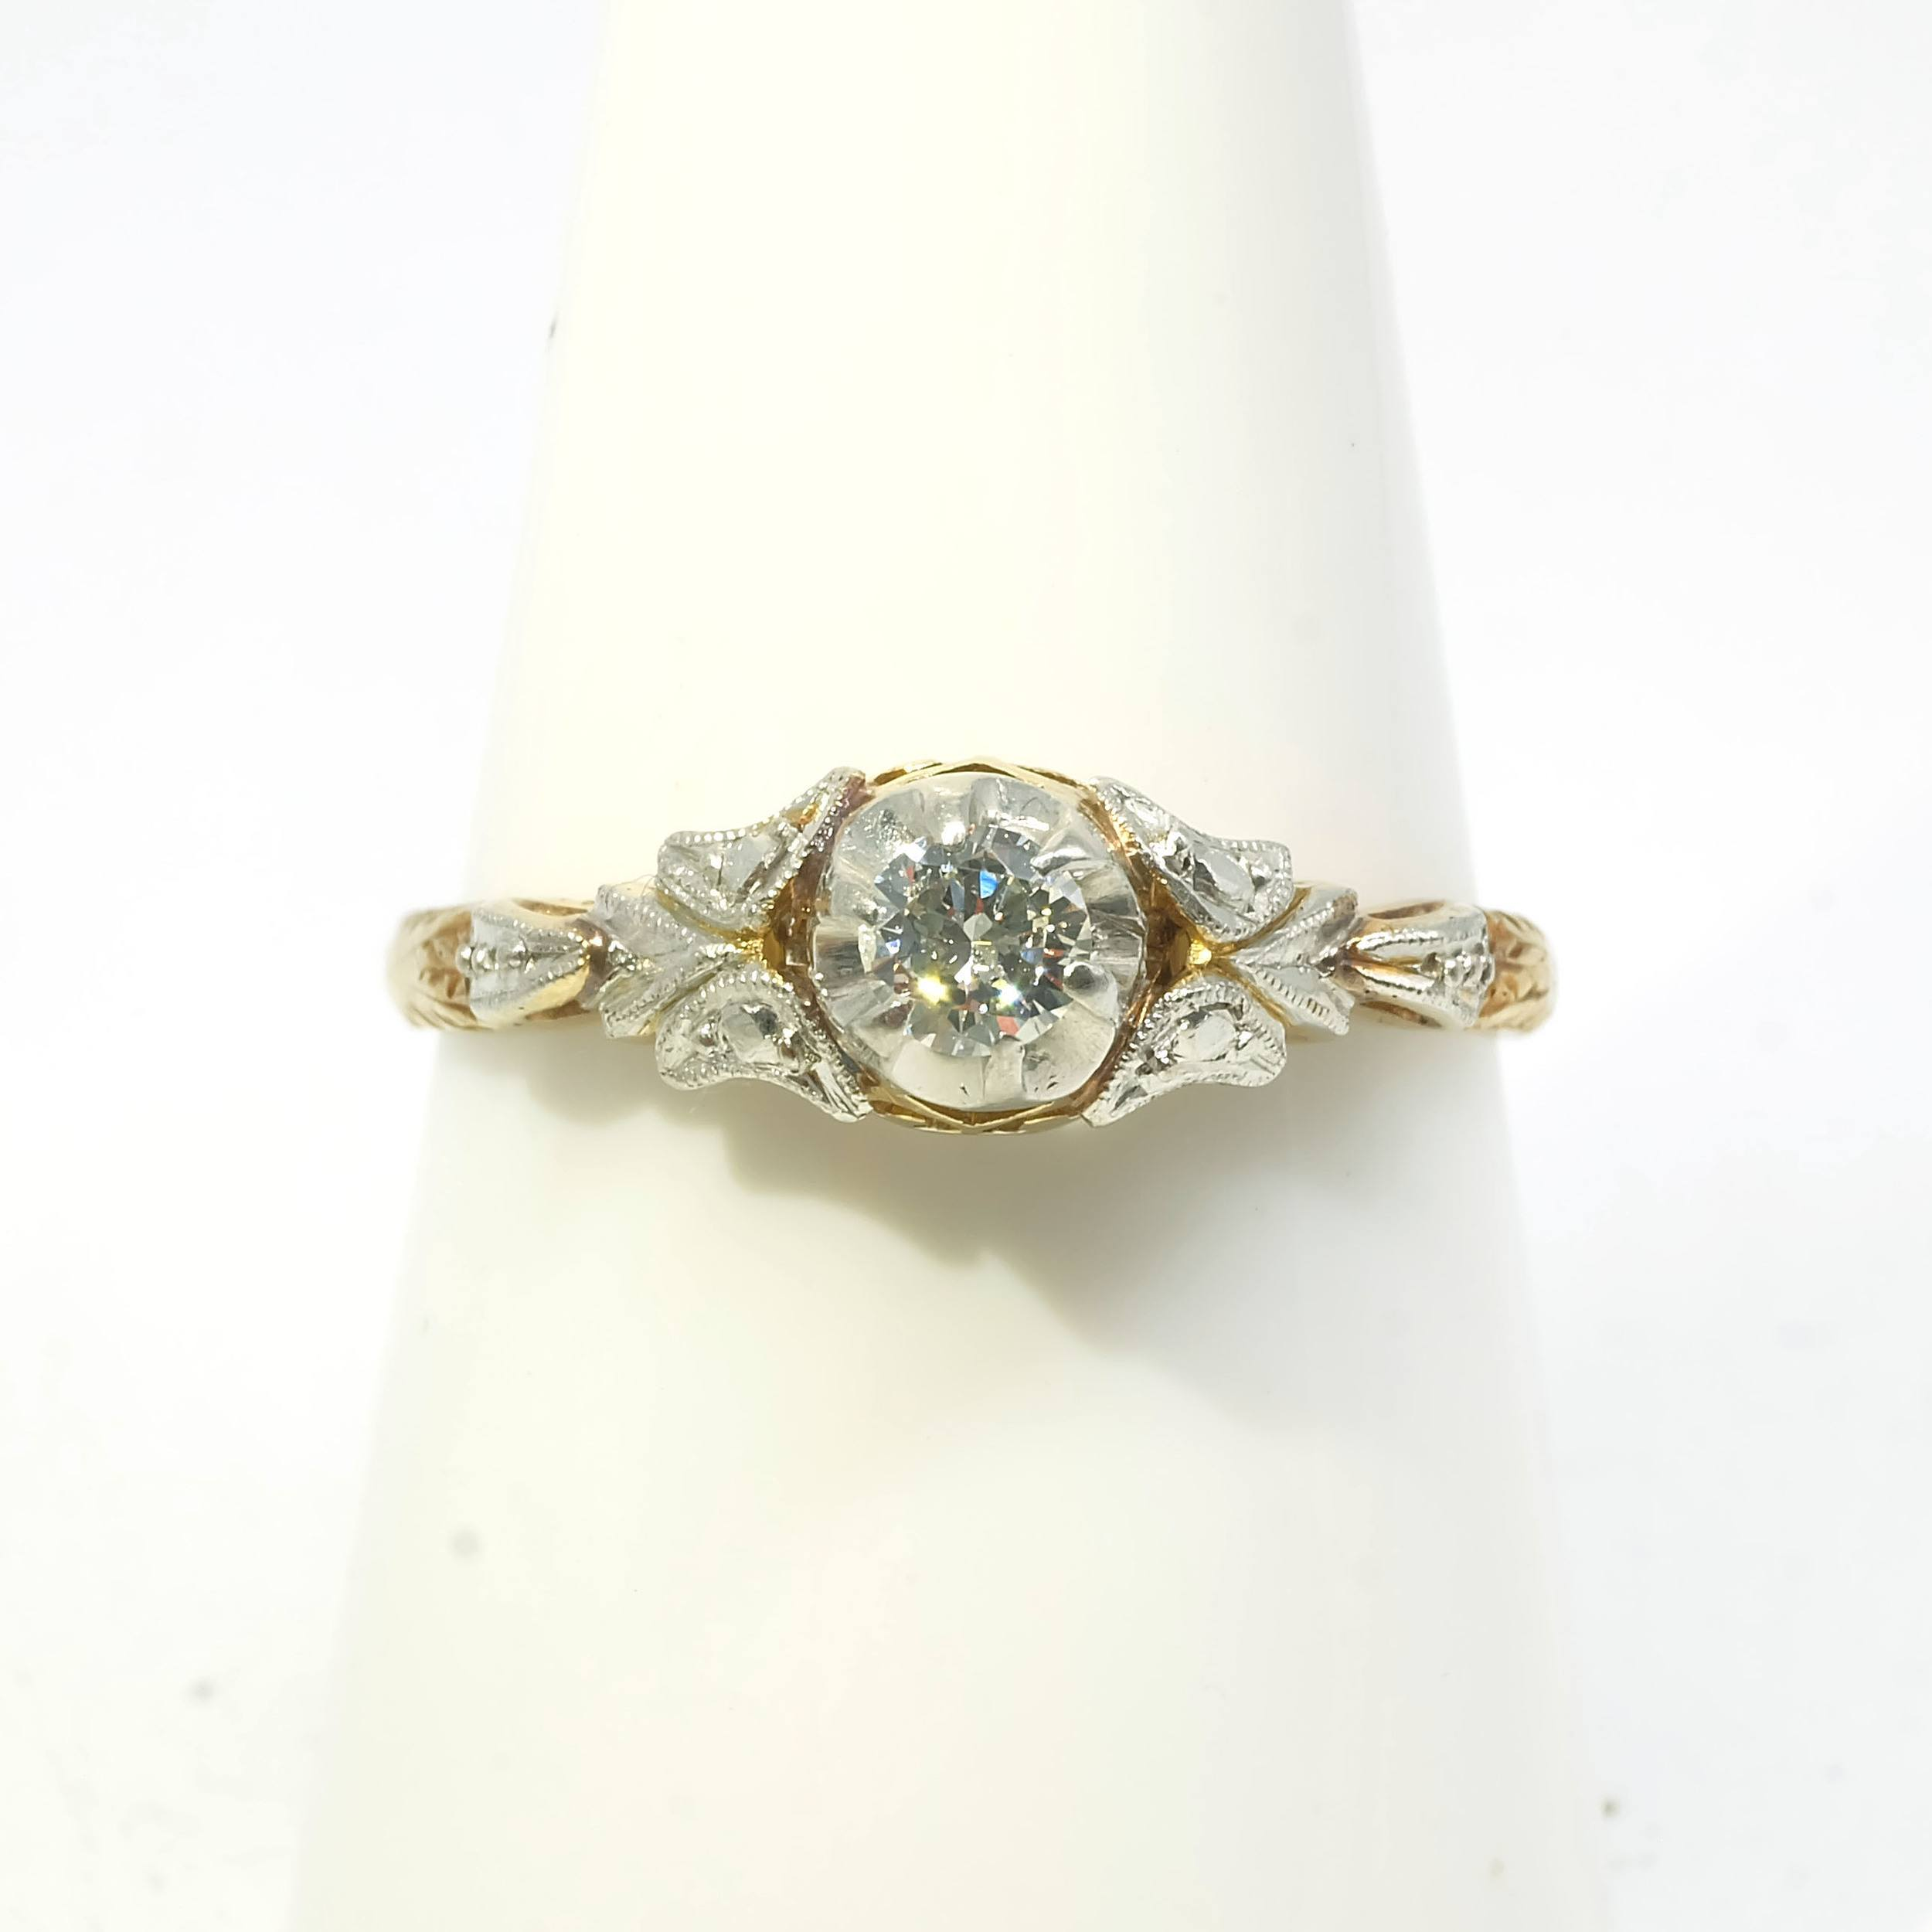 '18ct Yellow and White Gold Diamond and Solitaire Ring, with Round Brilliant Cut Diamond in Six Claw Illusion Setting with Fancy Engraved Shoulders'